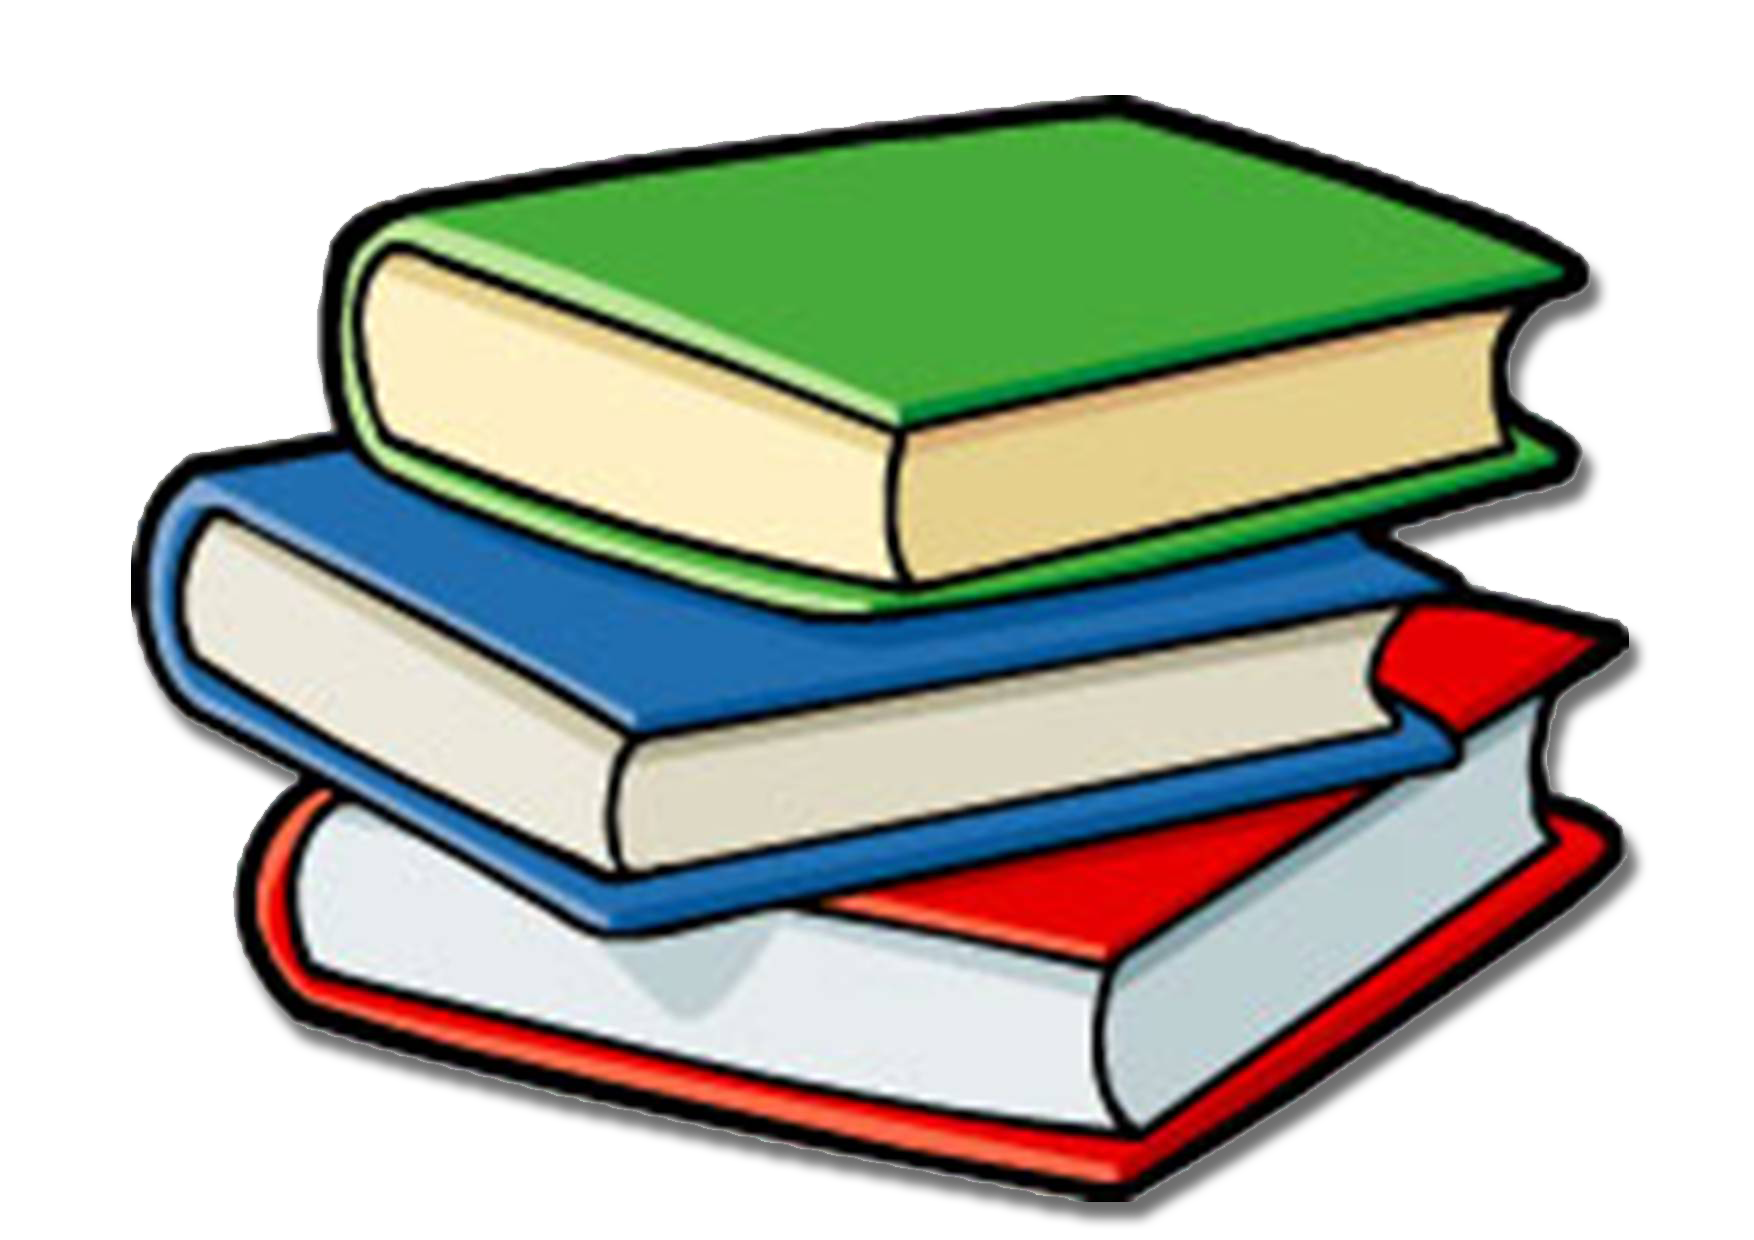 Books clipart png. Psd vectors and icons